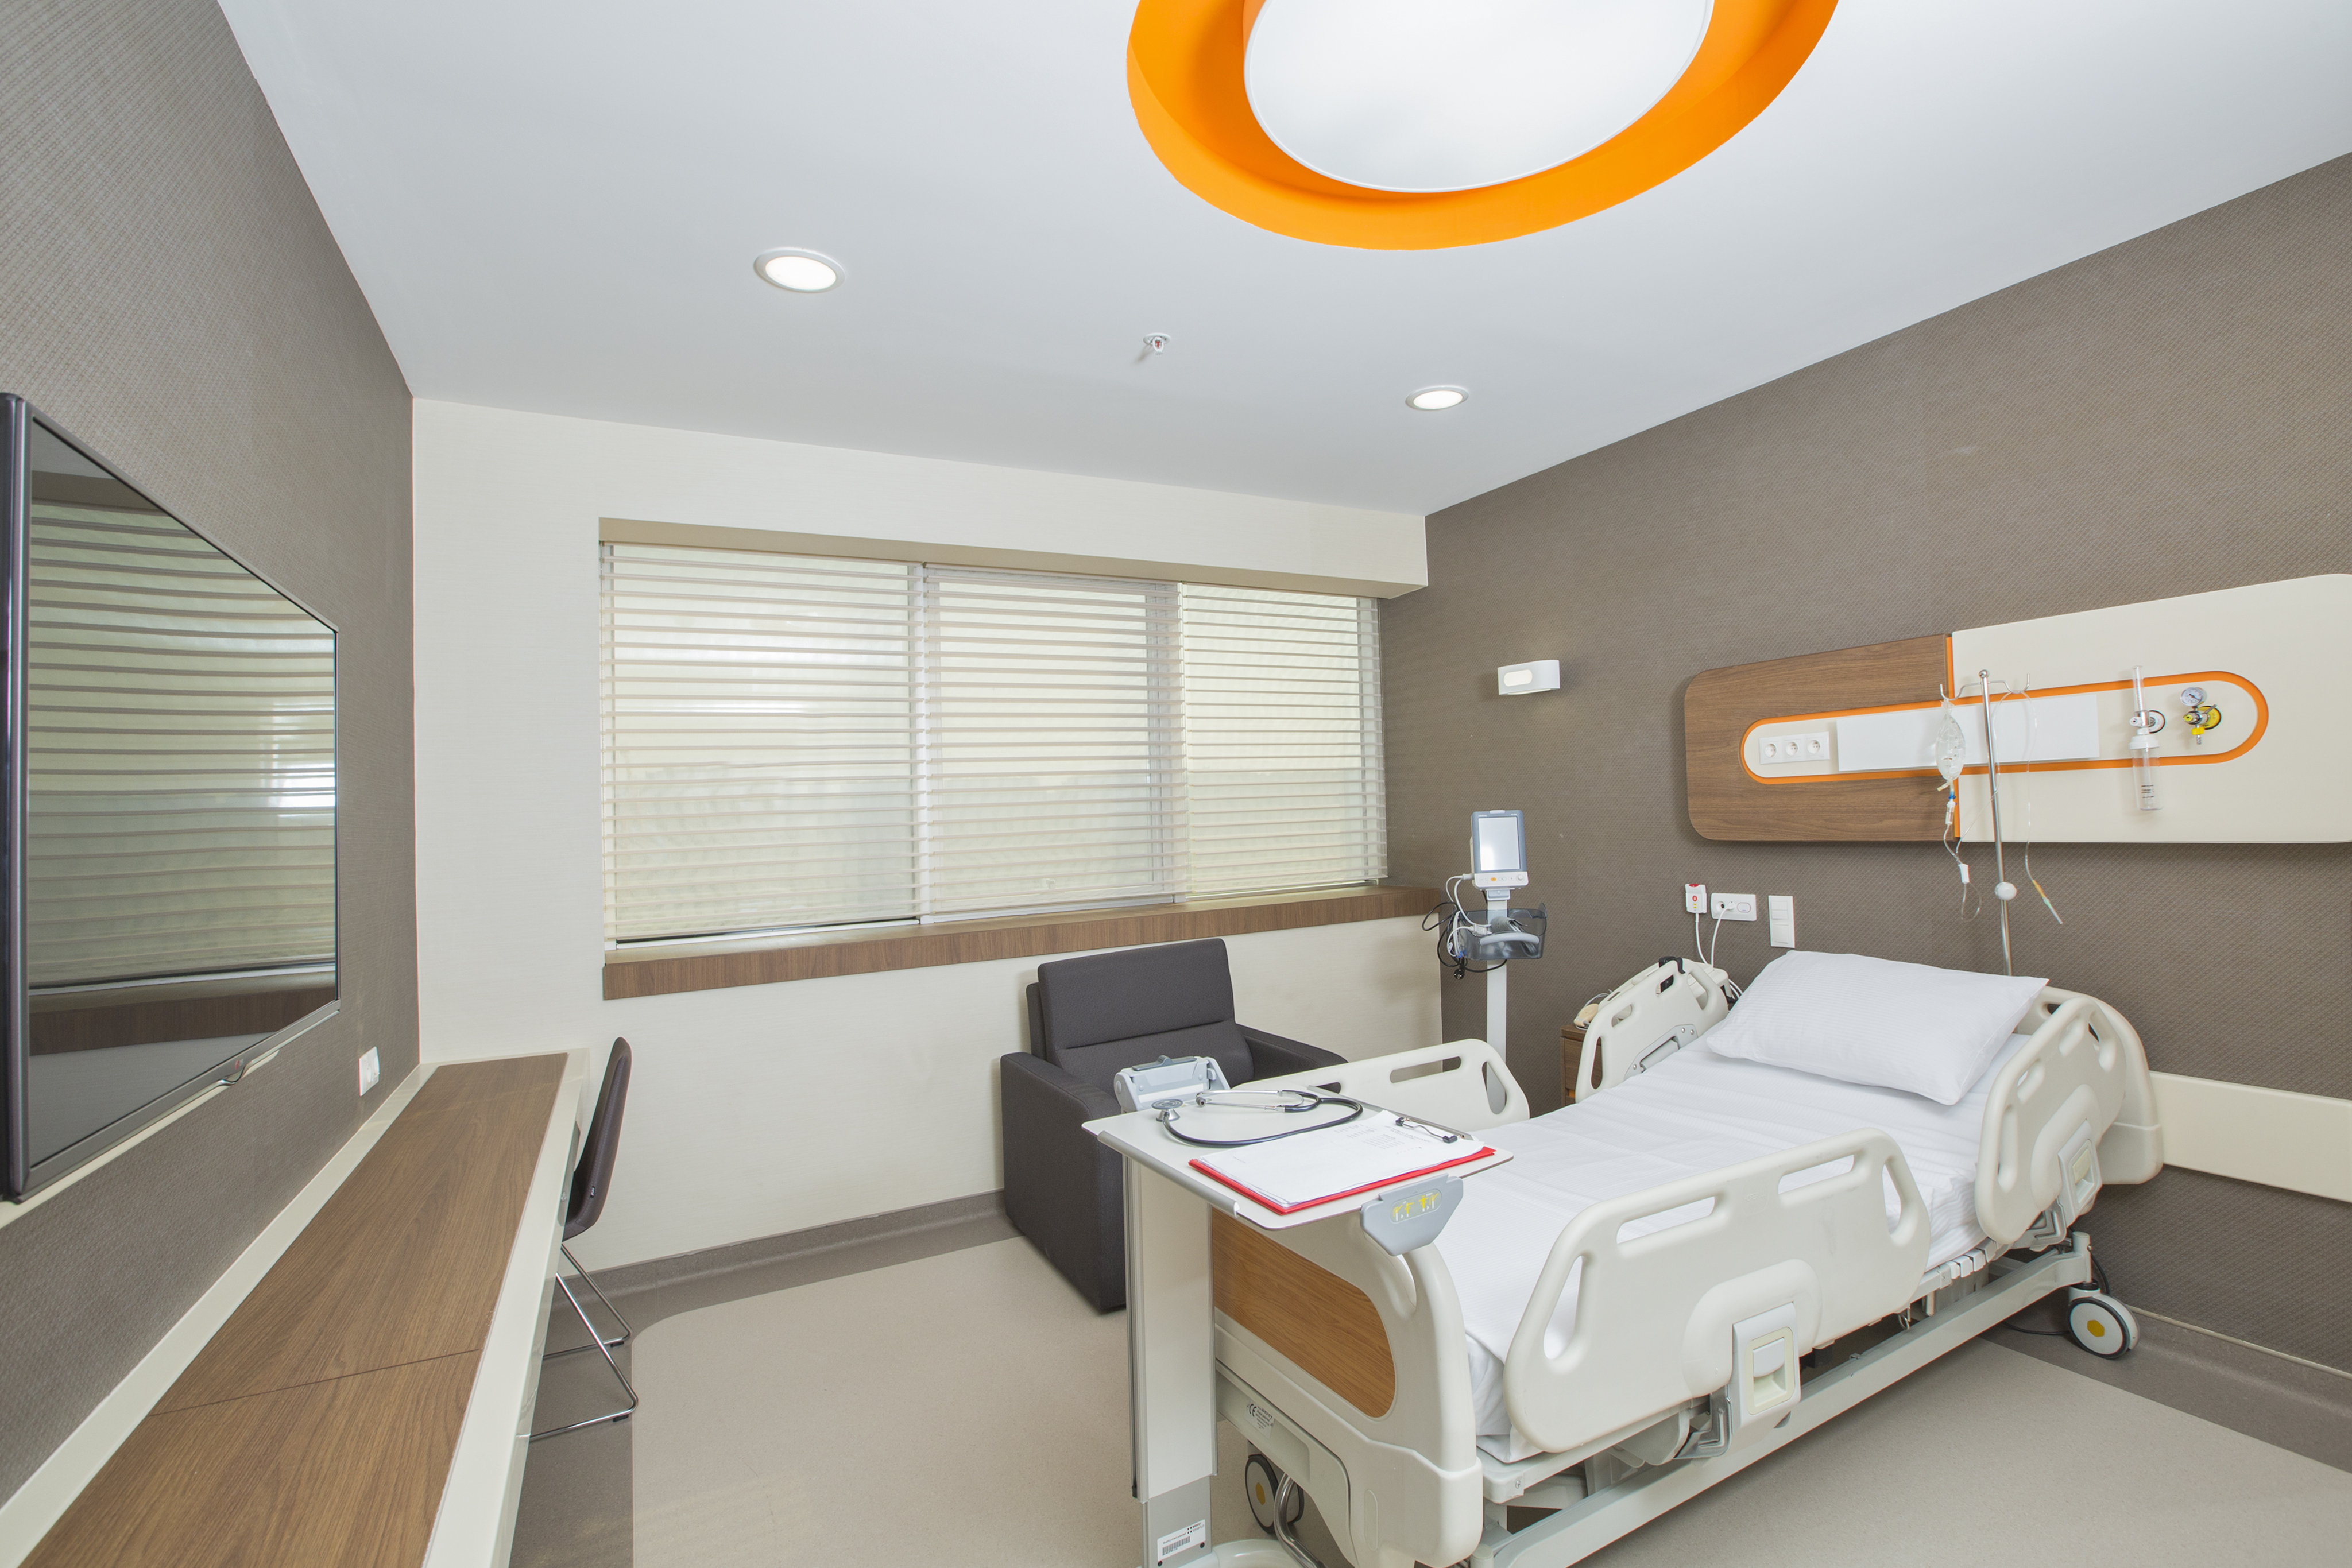 patient-rooms-and-suites-1.jpg